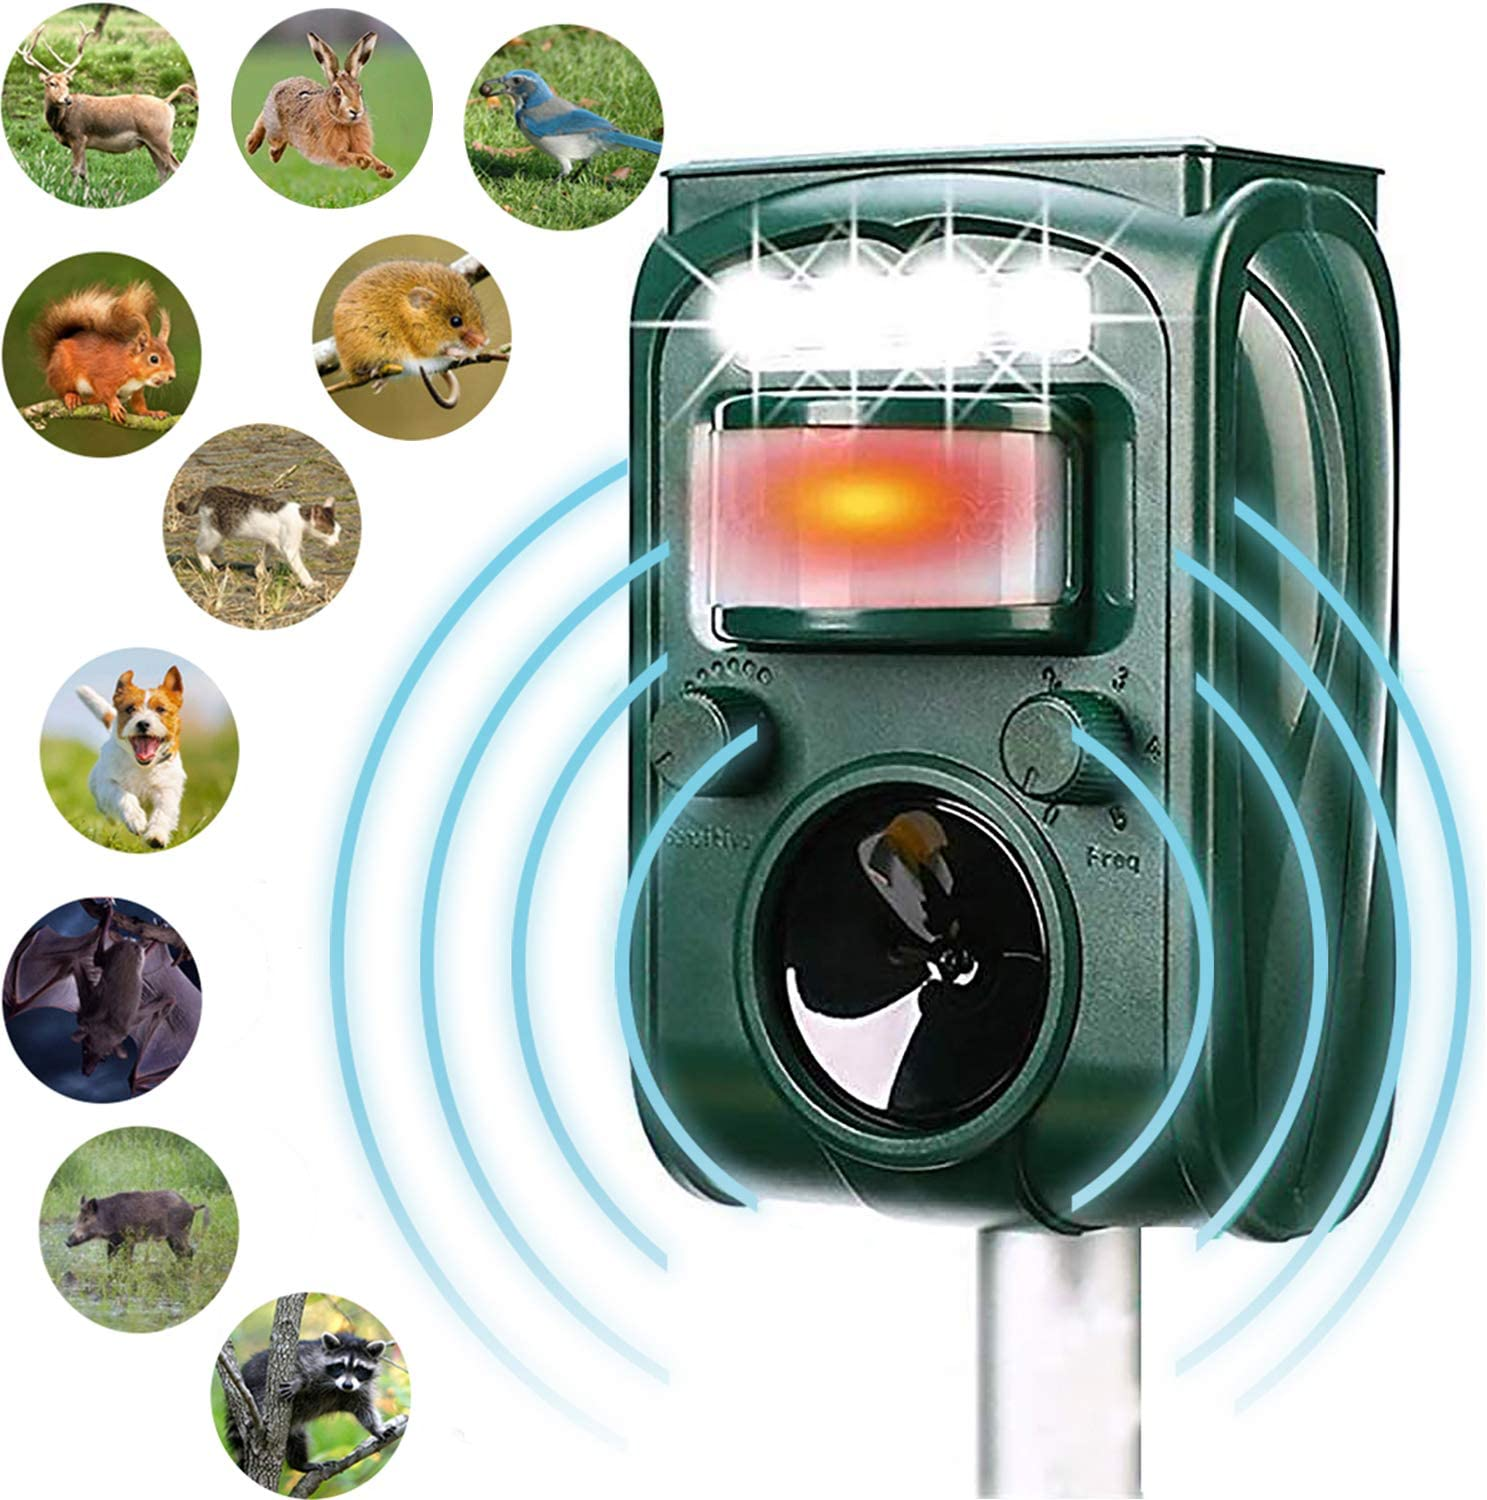 MCAIOX Ultrasonic Repeller, Solar Powered Waterproof Outdoor Animal Repeller with Ultrasonic Sound,Motion Sensor and Flashing Light Repeller for Cats, Dogs,Repel-pesticides